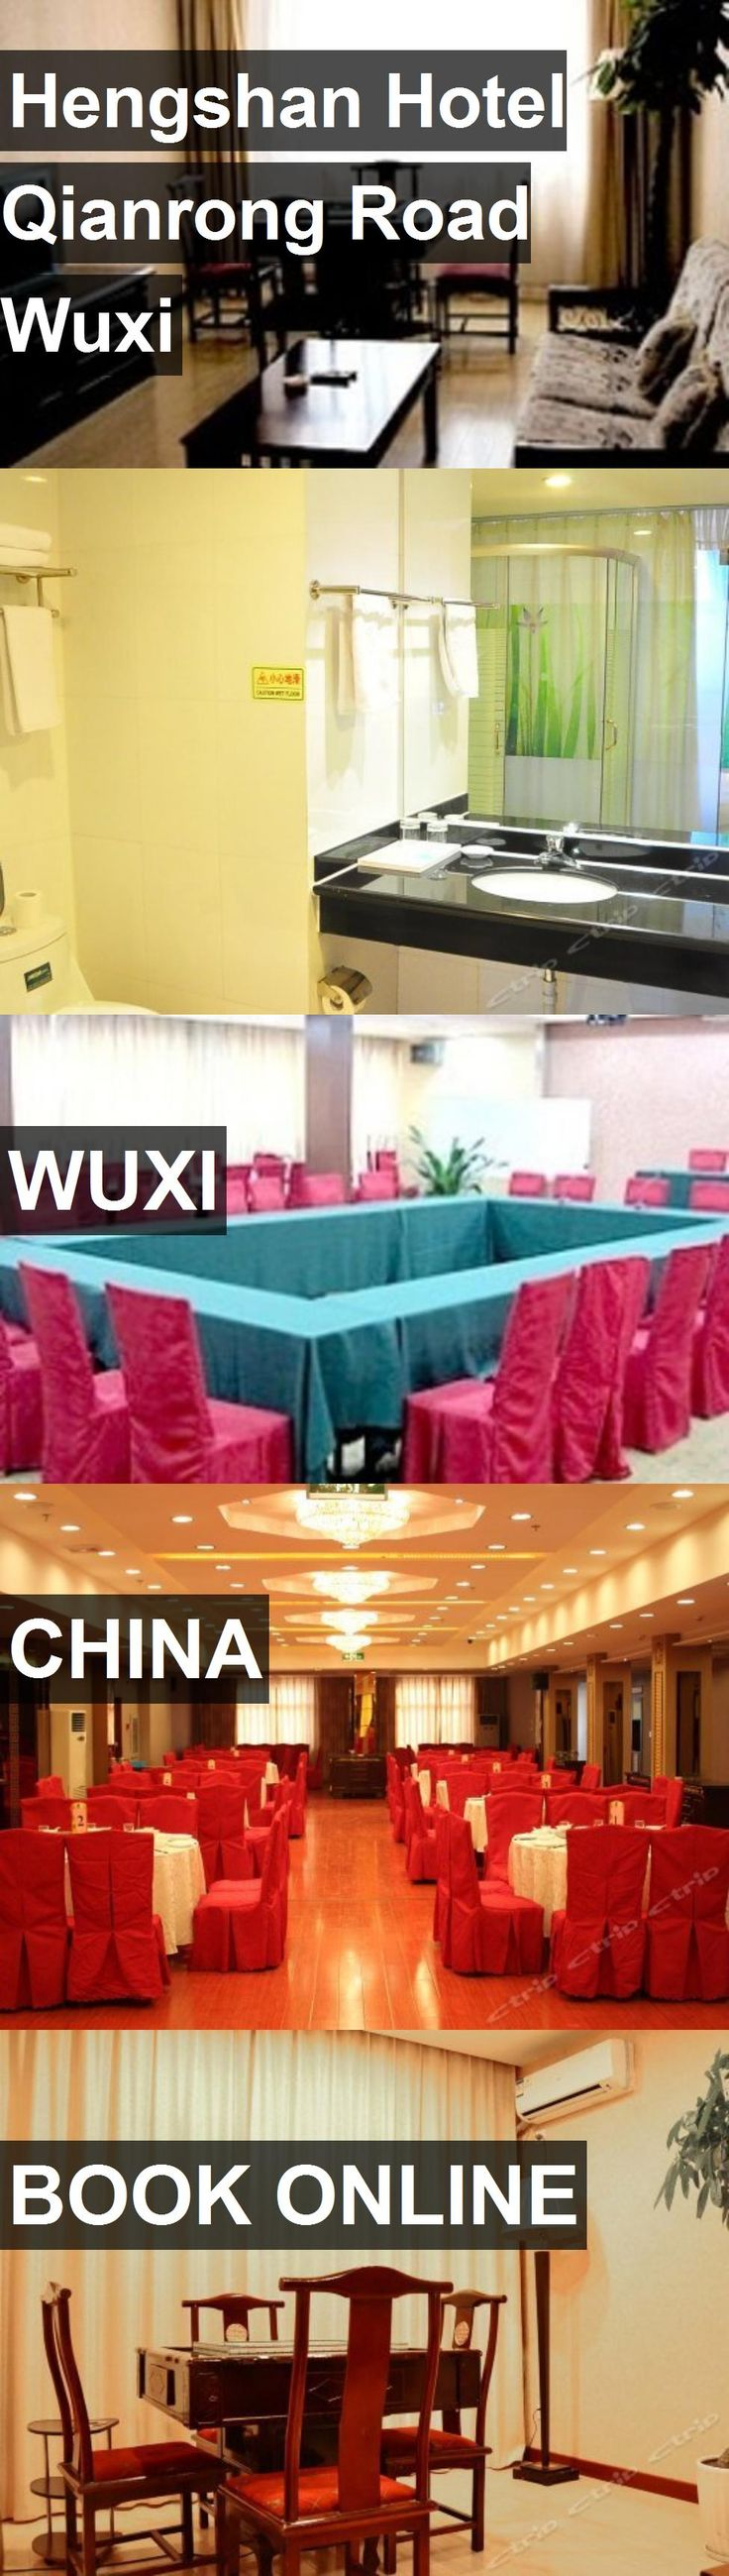 Hengshan Hotel Qianrong Road Wuxi in Wuxi, China. For more information, photos, reviews and best prices please follow the link. #China #Wuxi #travel #vacation #hotel